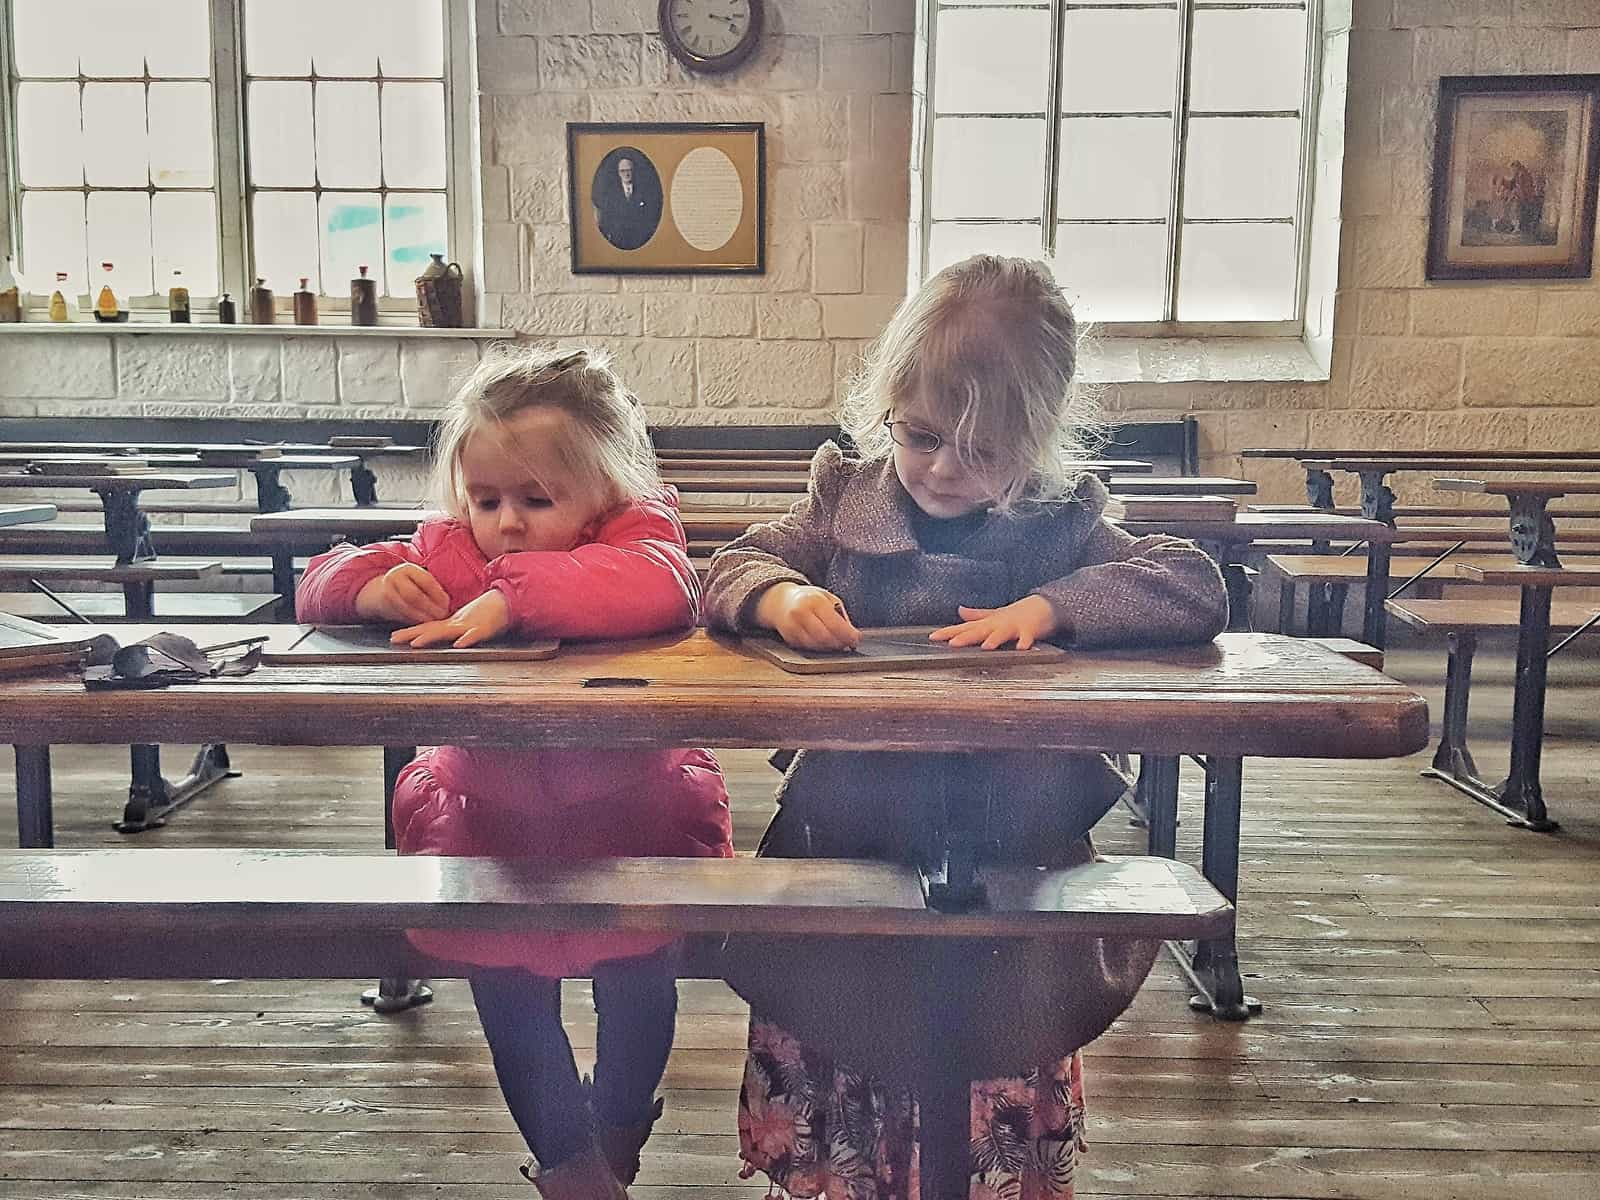 20 tips for a brilliant day out at the Black Country Living Museum near Dudley in the West Midlands. This is a living history museum that is perfect for visitors of all ages from small children to adults. It is an excellent, full day out with both food outlets and picnic areas available. Includes the Dudley Canal and Tunnel Trust.